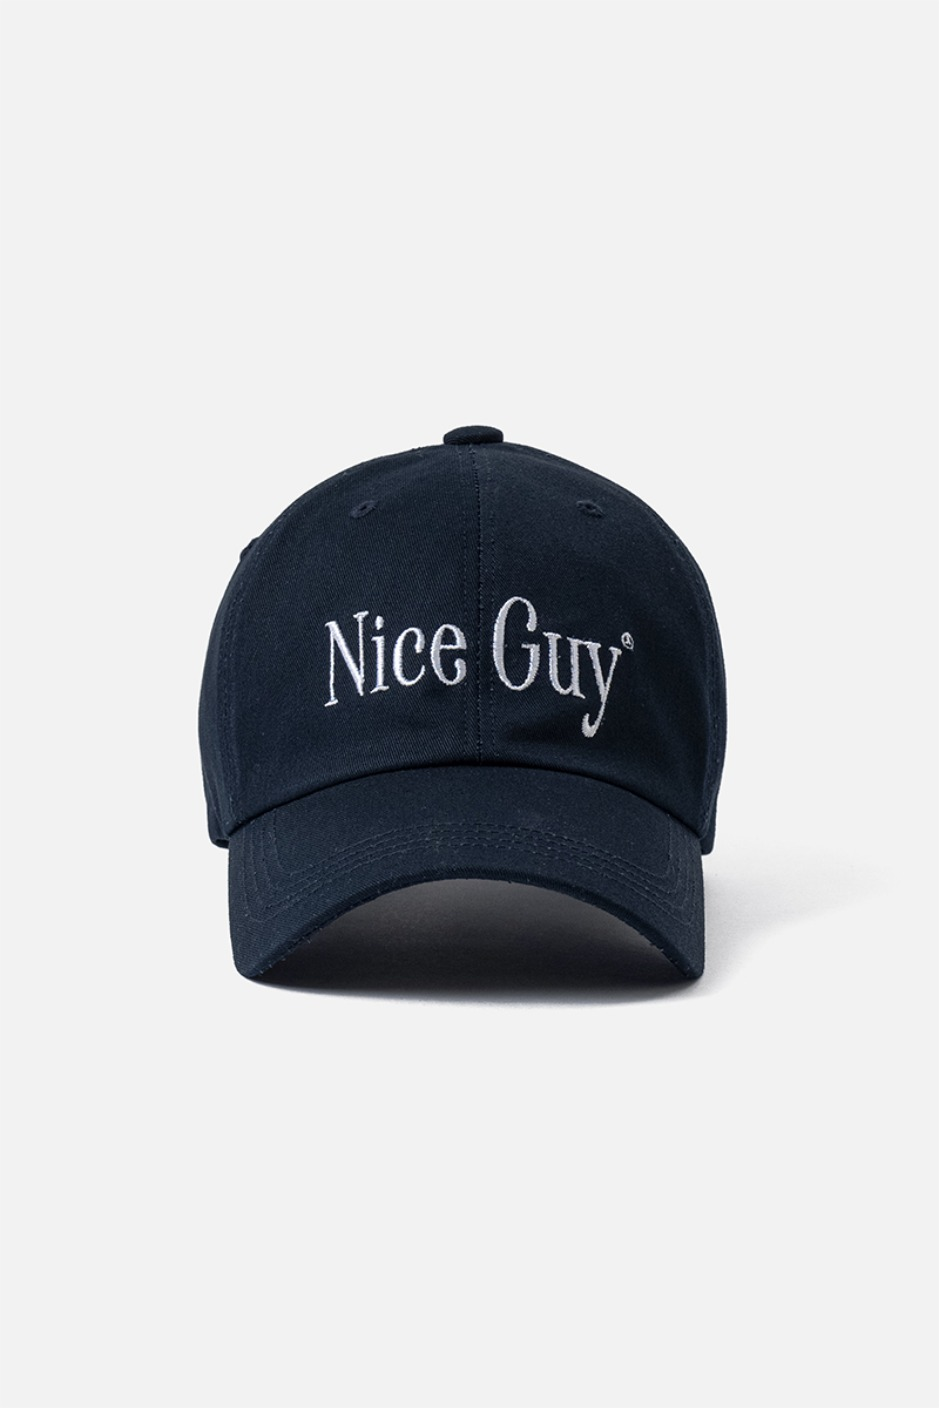 NICE GUY CAP-NAVY